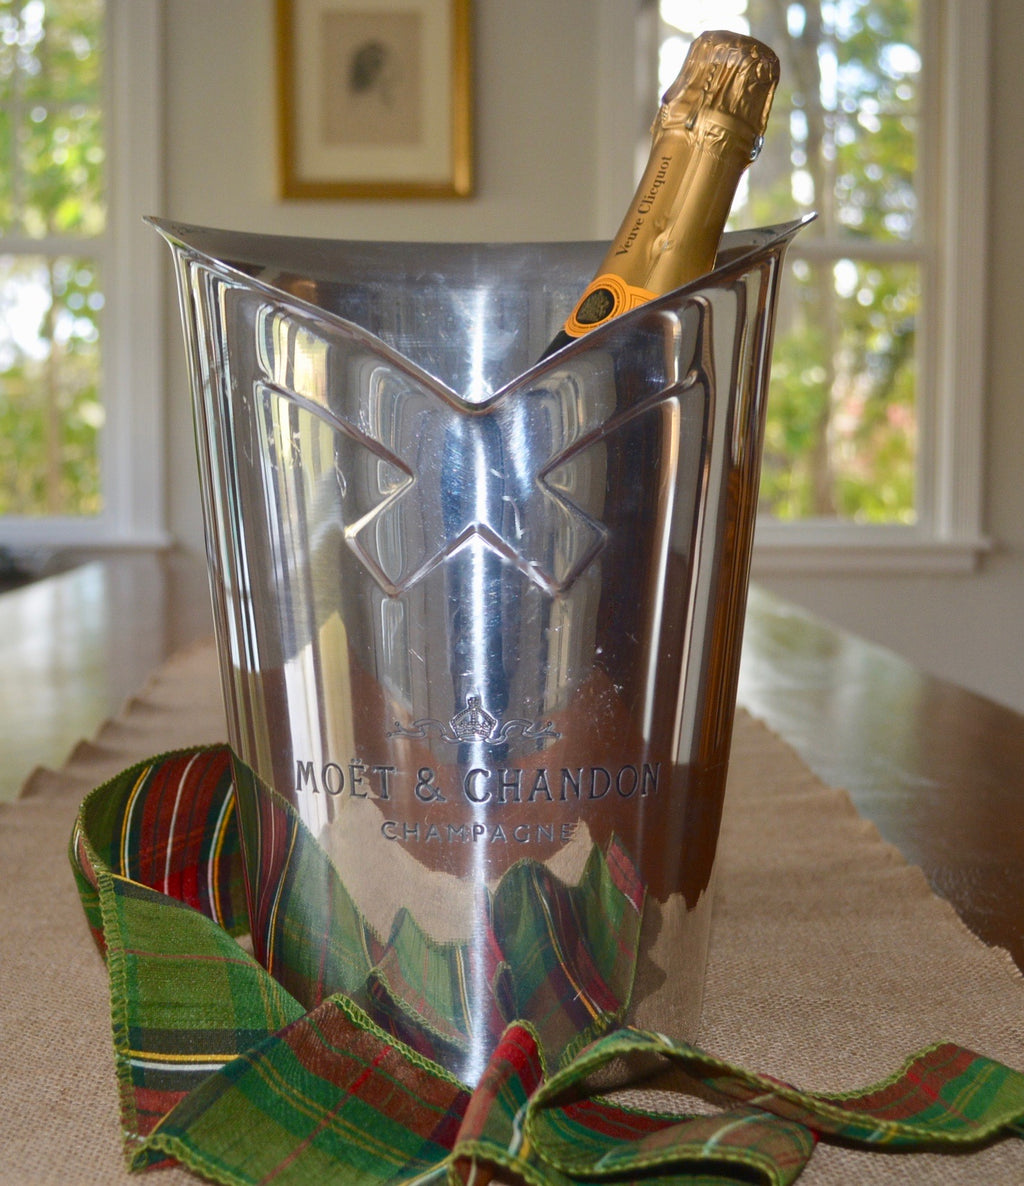 Moët & Chandon Ice Bucket